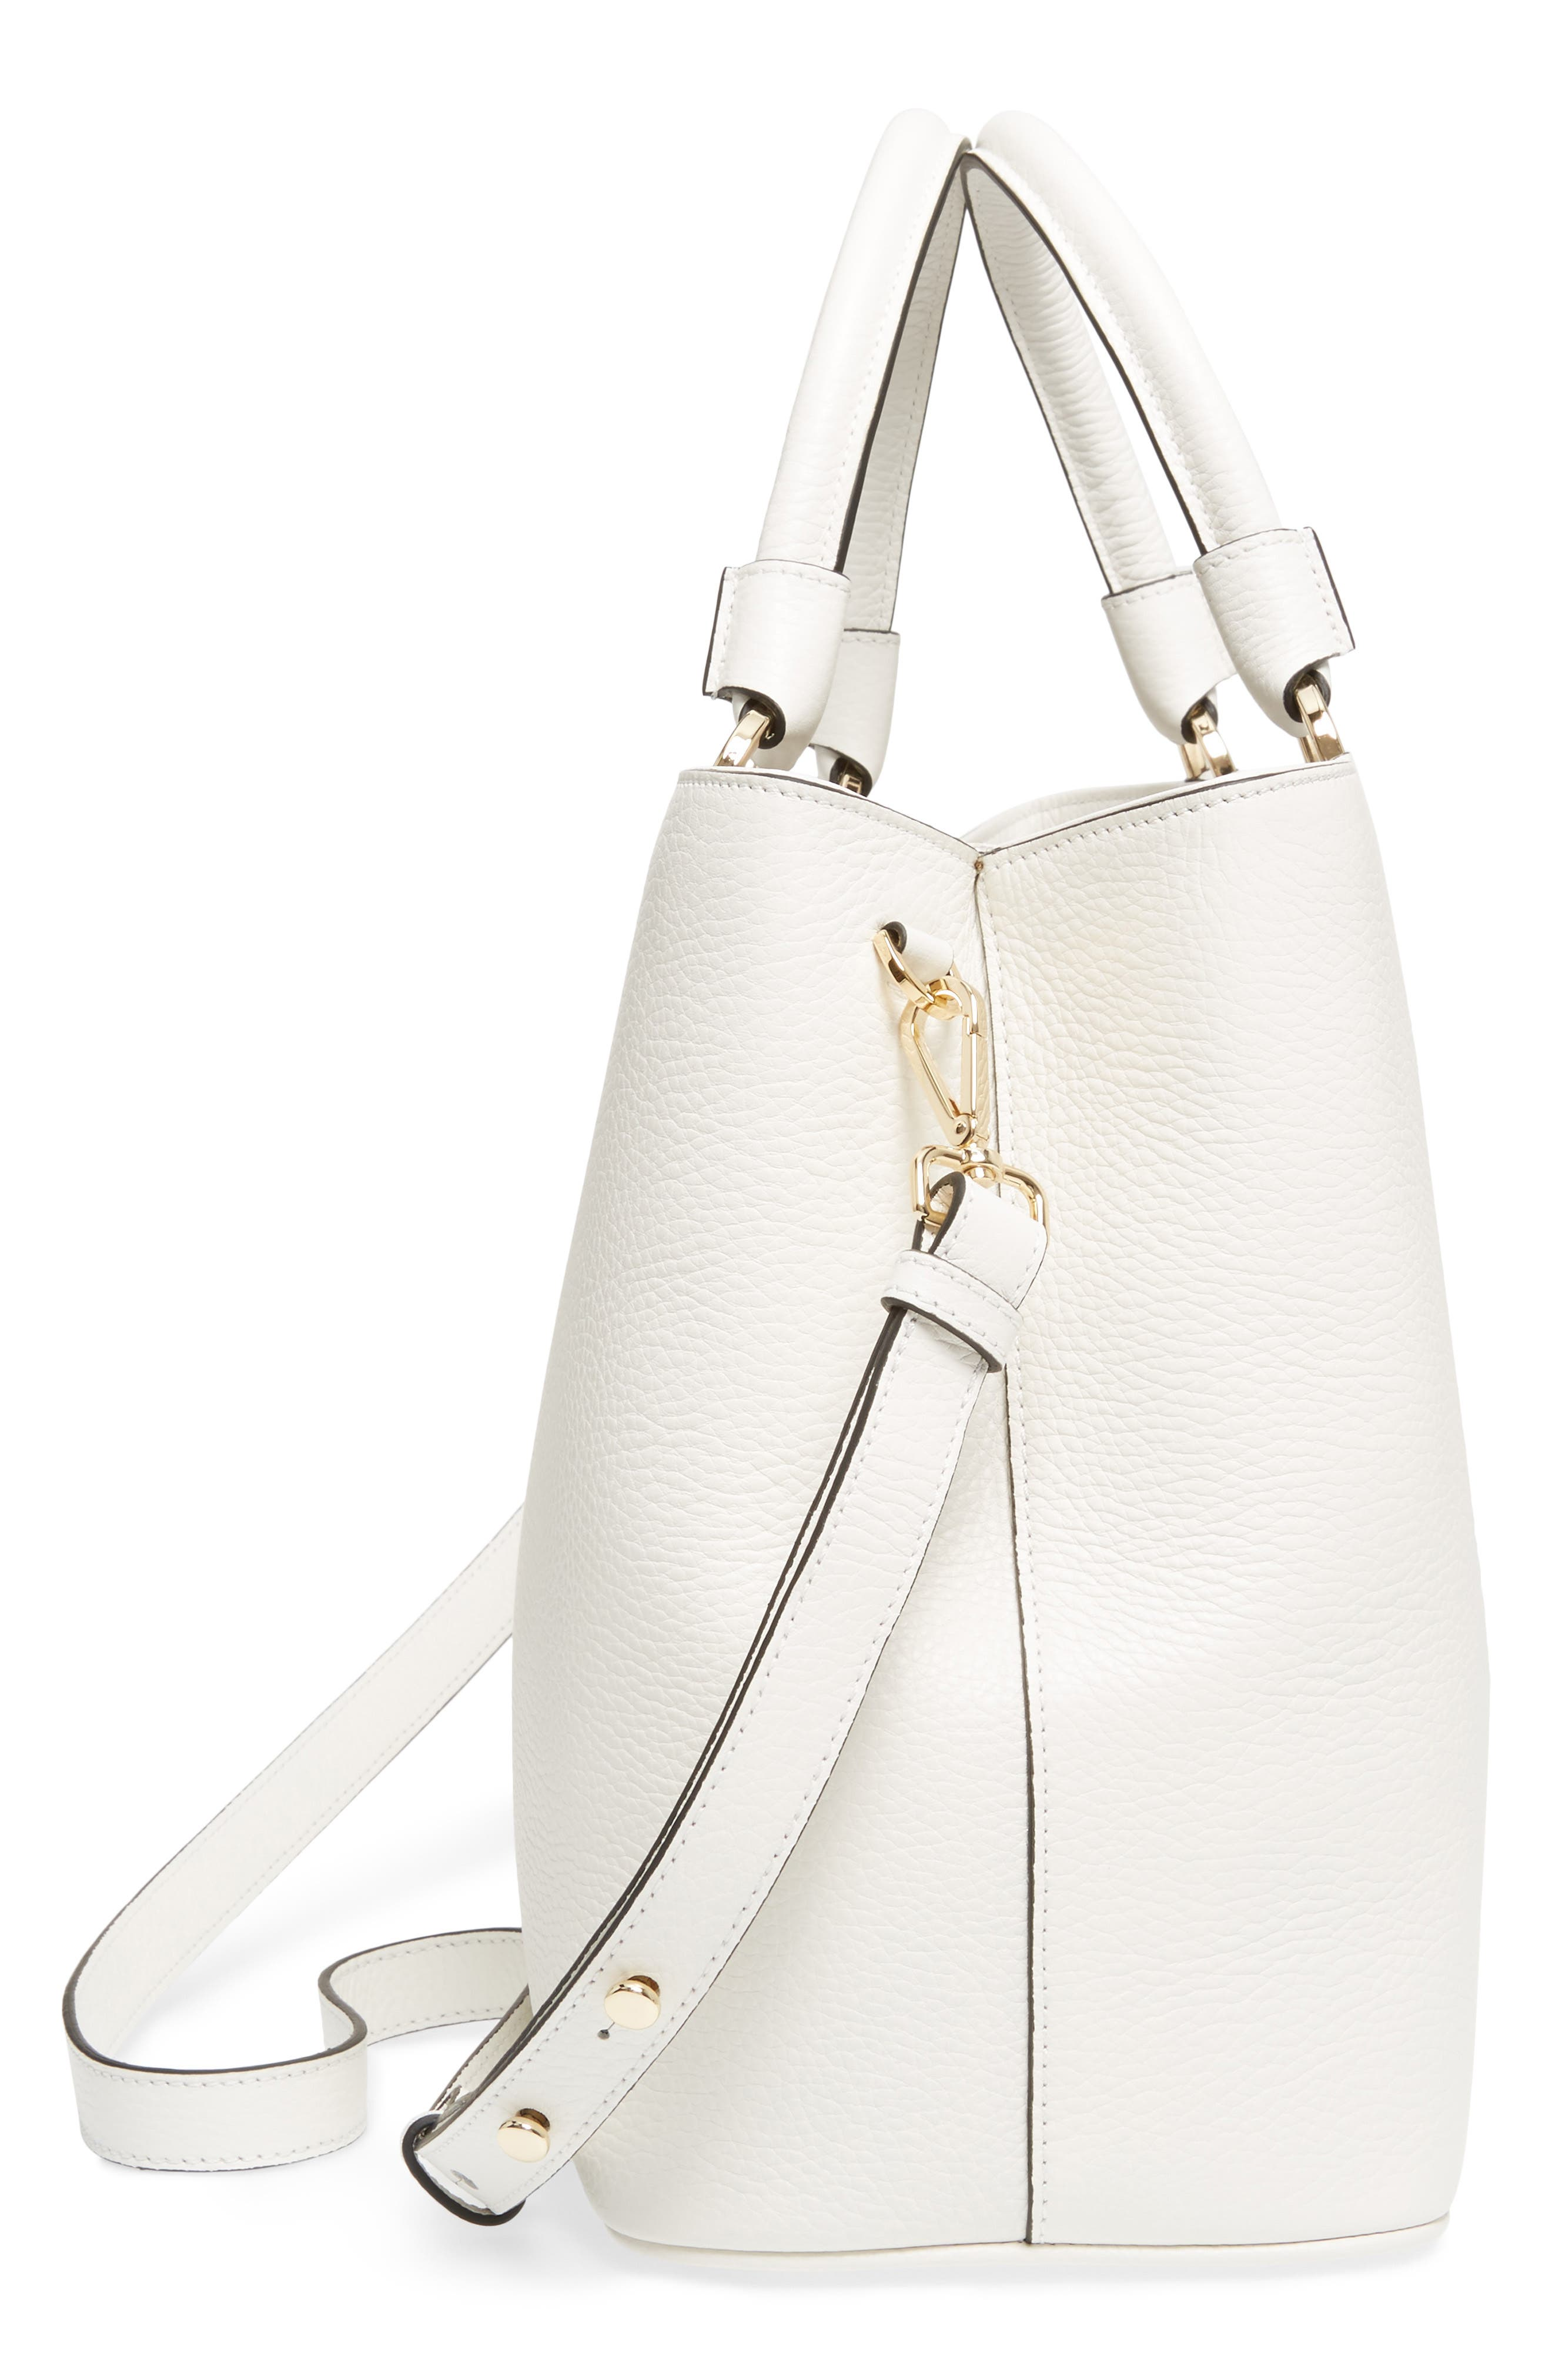 Veronica Cachemire Leather Tote,                             Alternate thumbnail 5, color,                             New Milk